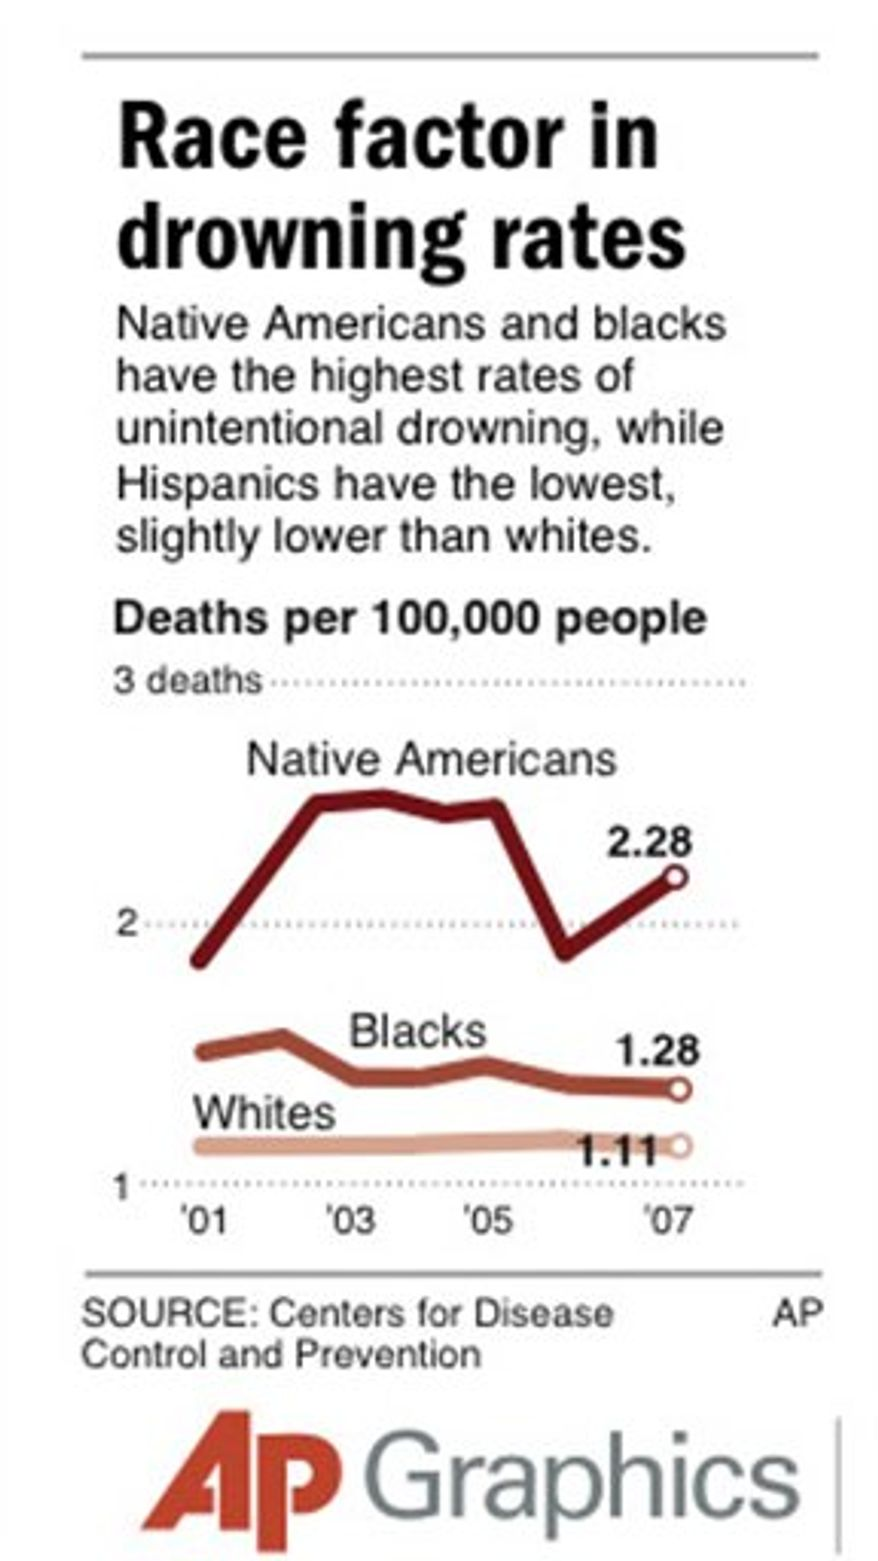 Graphic shows death rates by unintentional drowning for Native Americans, blacks and whites.